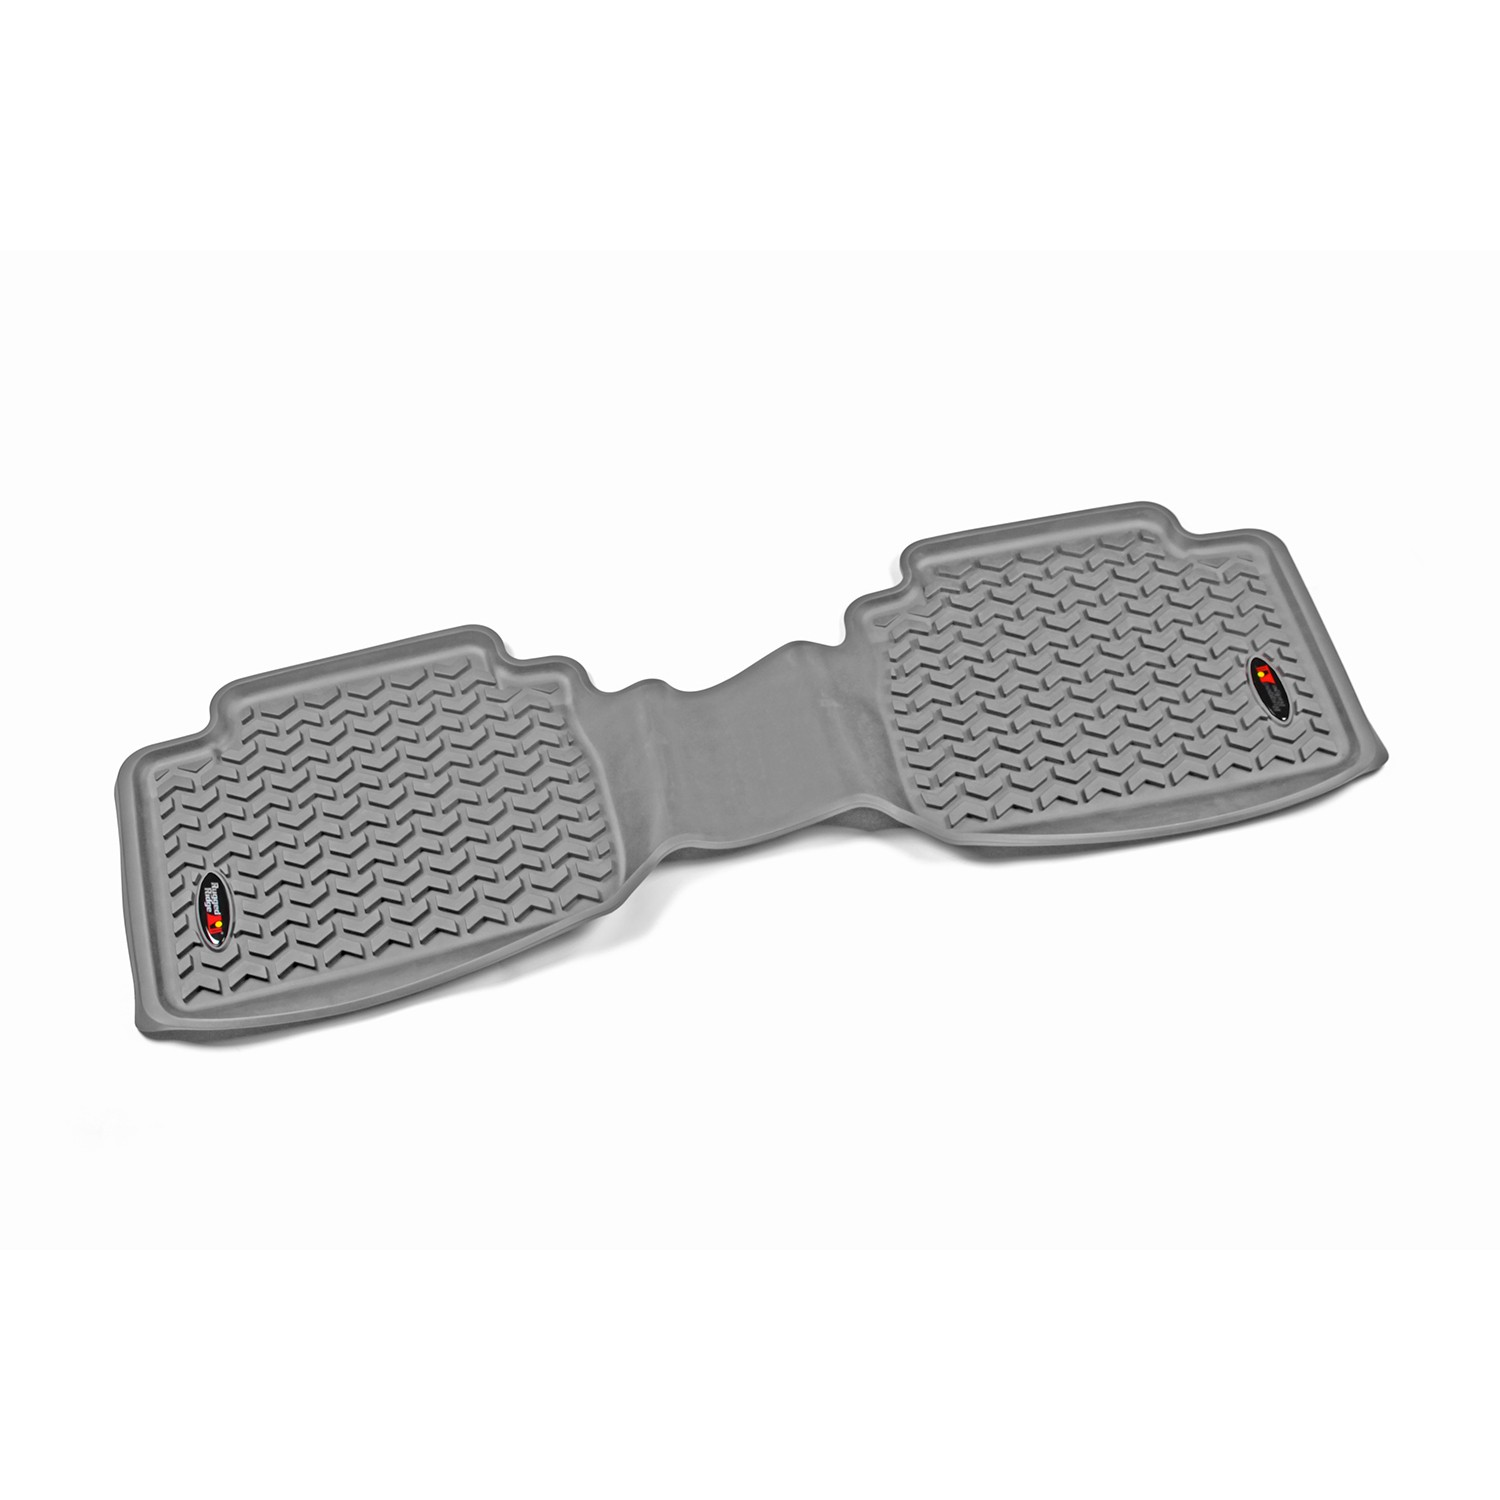 Rugged Ridge 05-18 Rear Floor Liner Kit - Grey